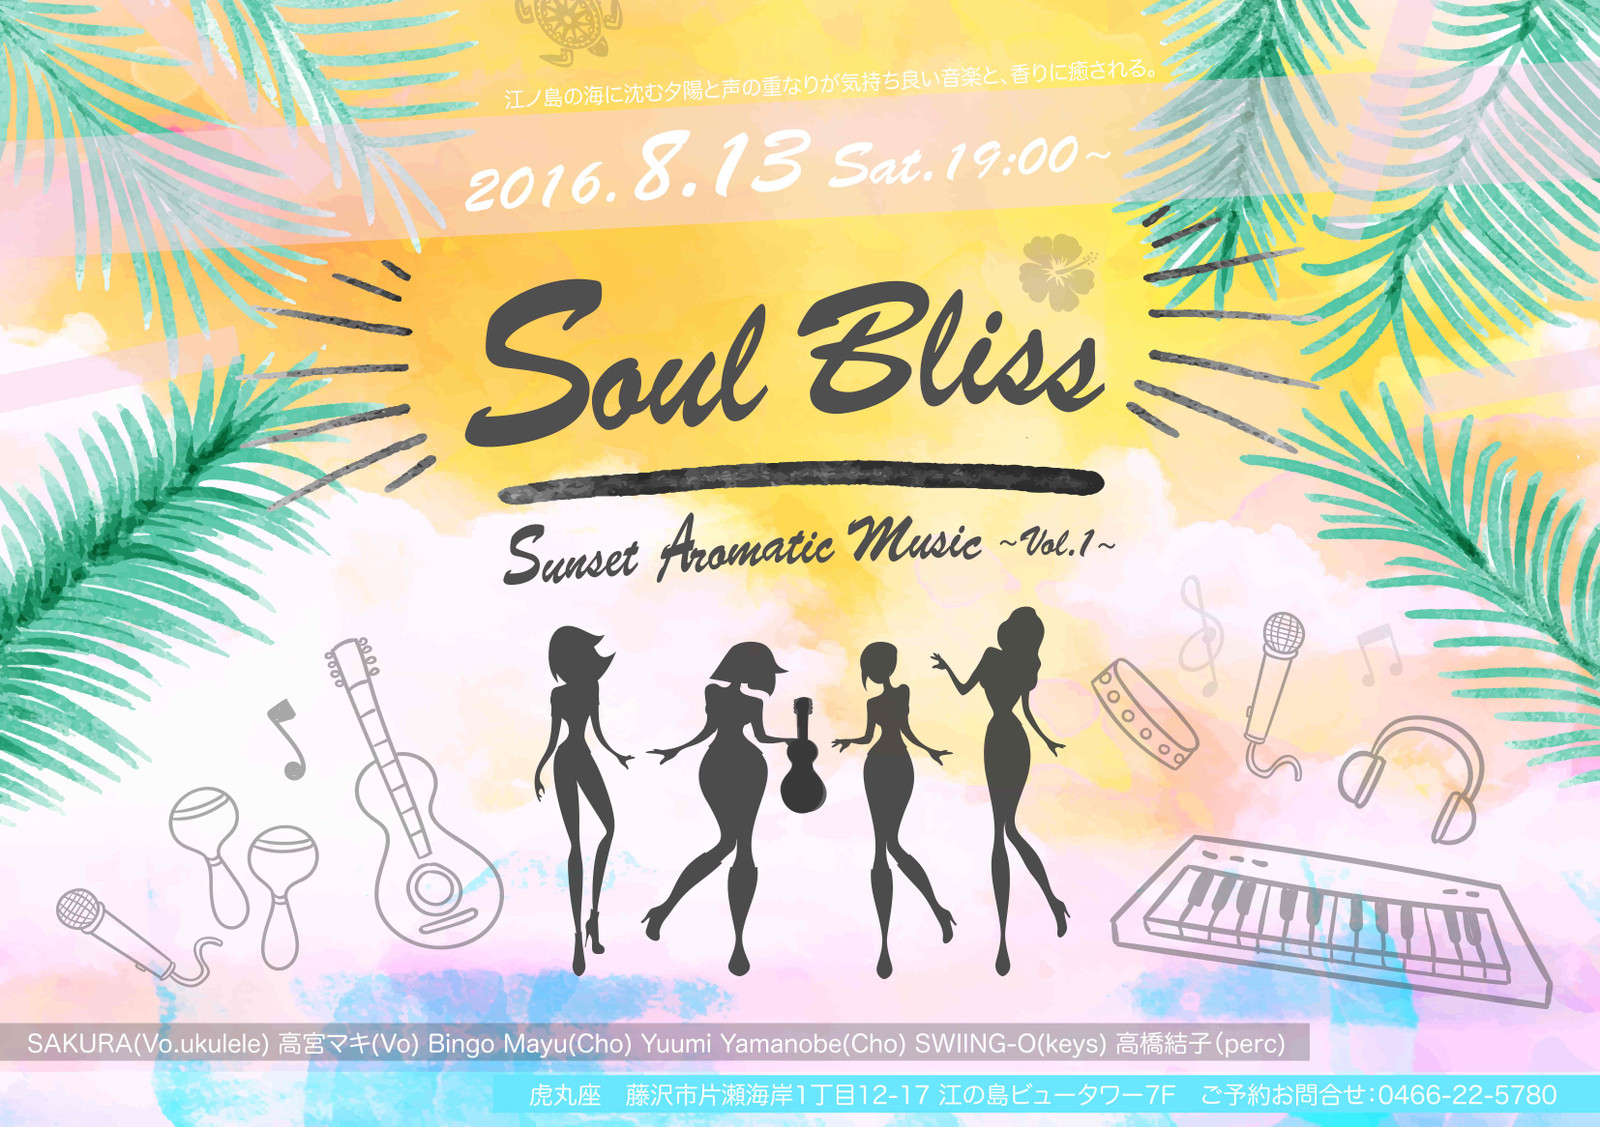 Soul_bliss_live_omote